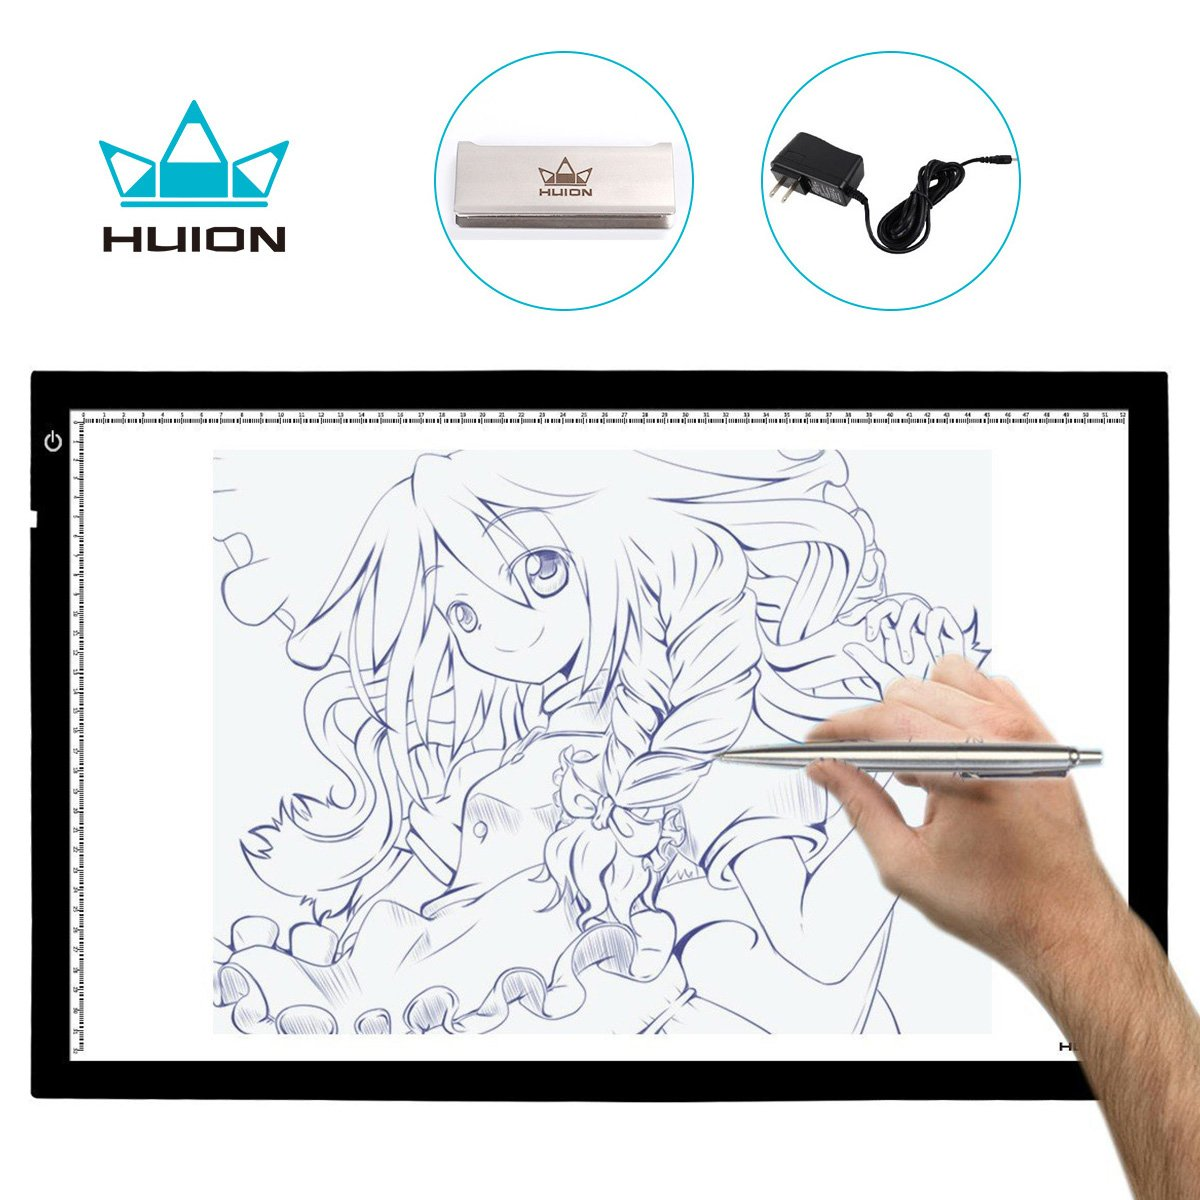 Huion A2 Large Tracing Light Box, AC Powered Light Pad, Adjustable Brightness (23.6-by-15.75 Inches) by Huion